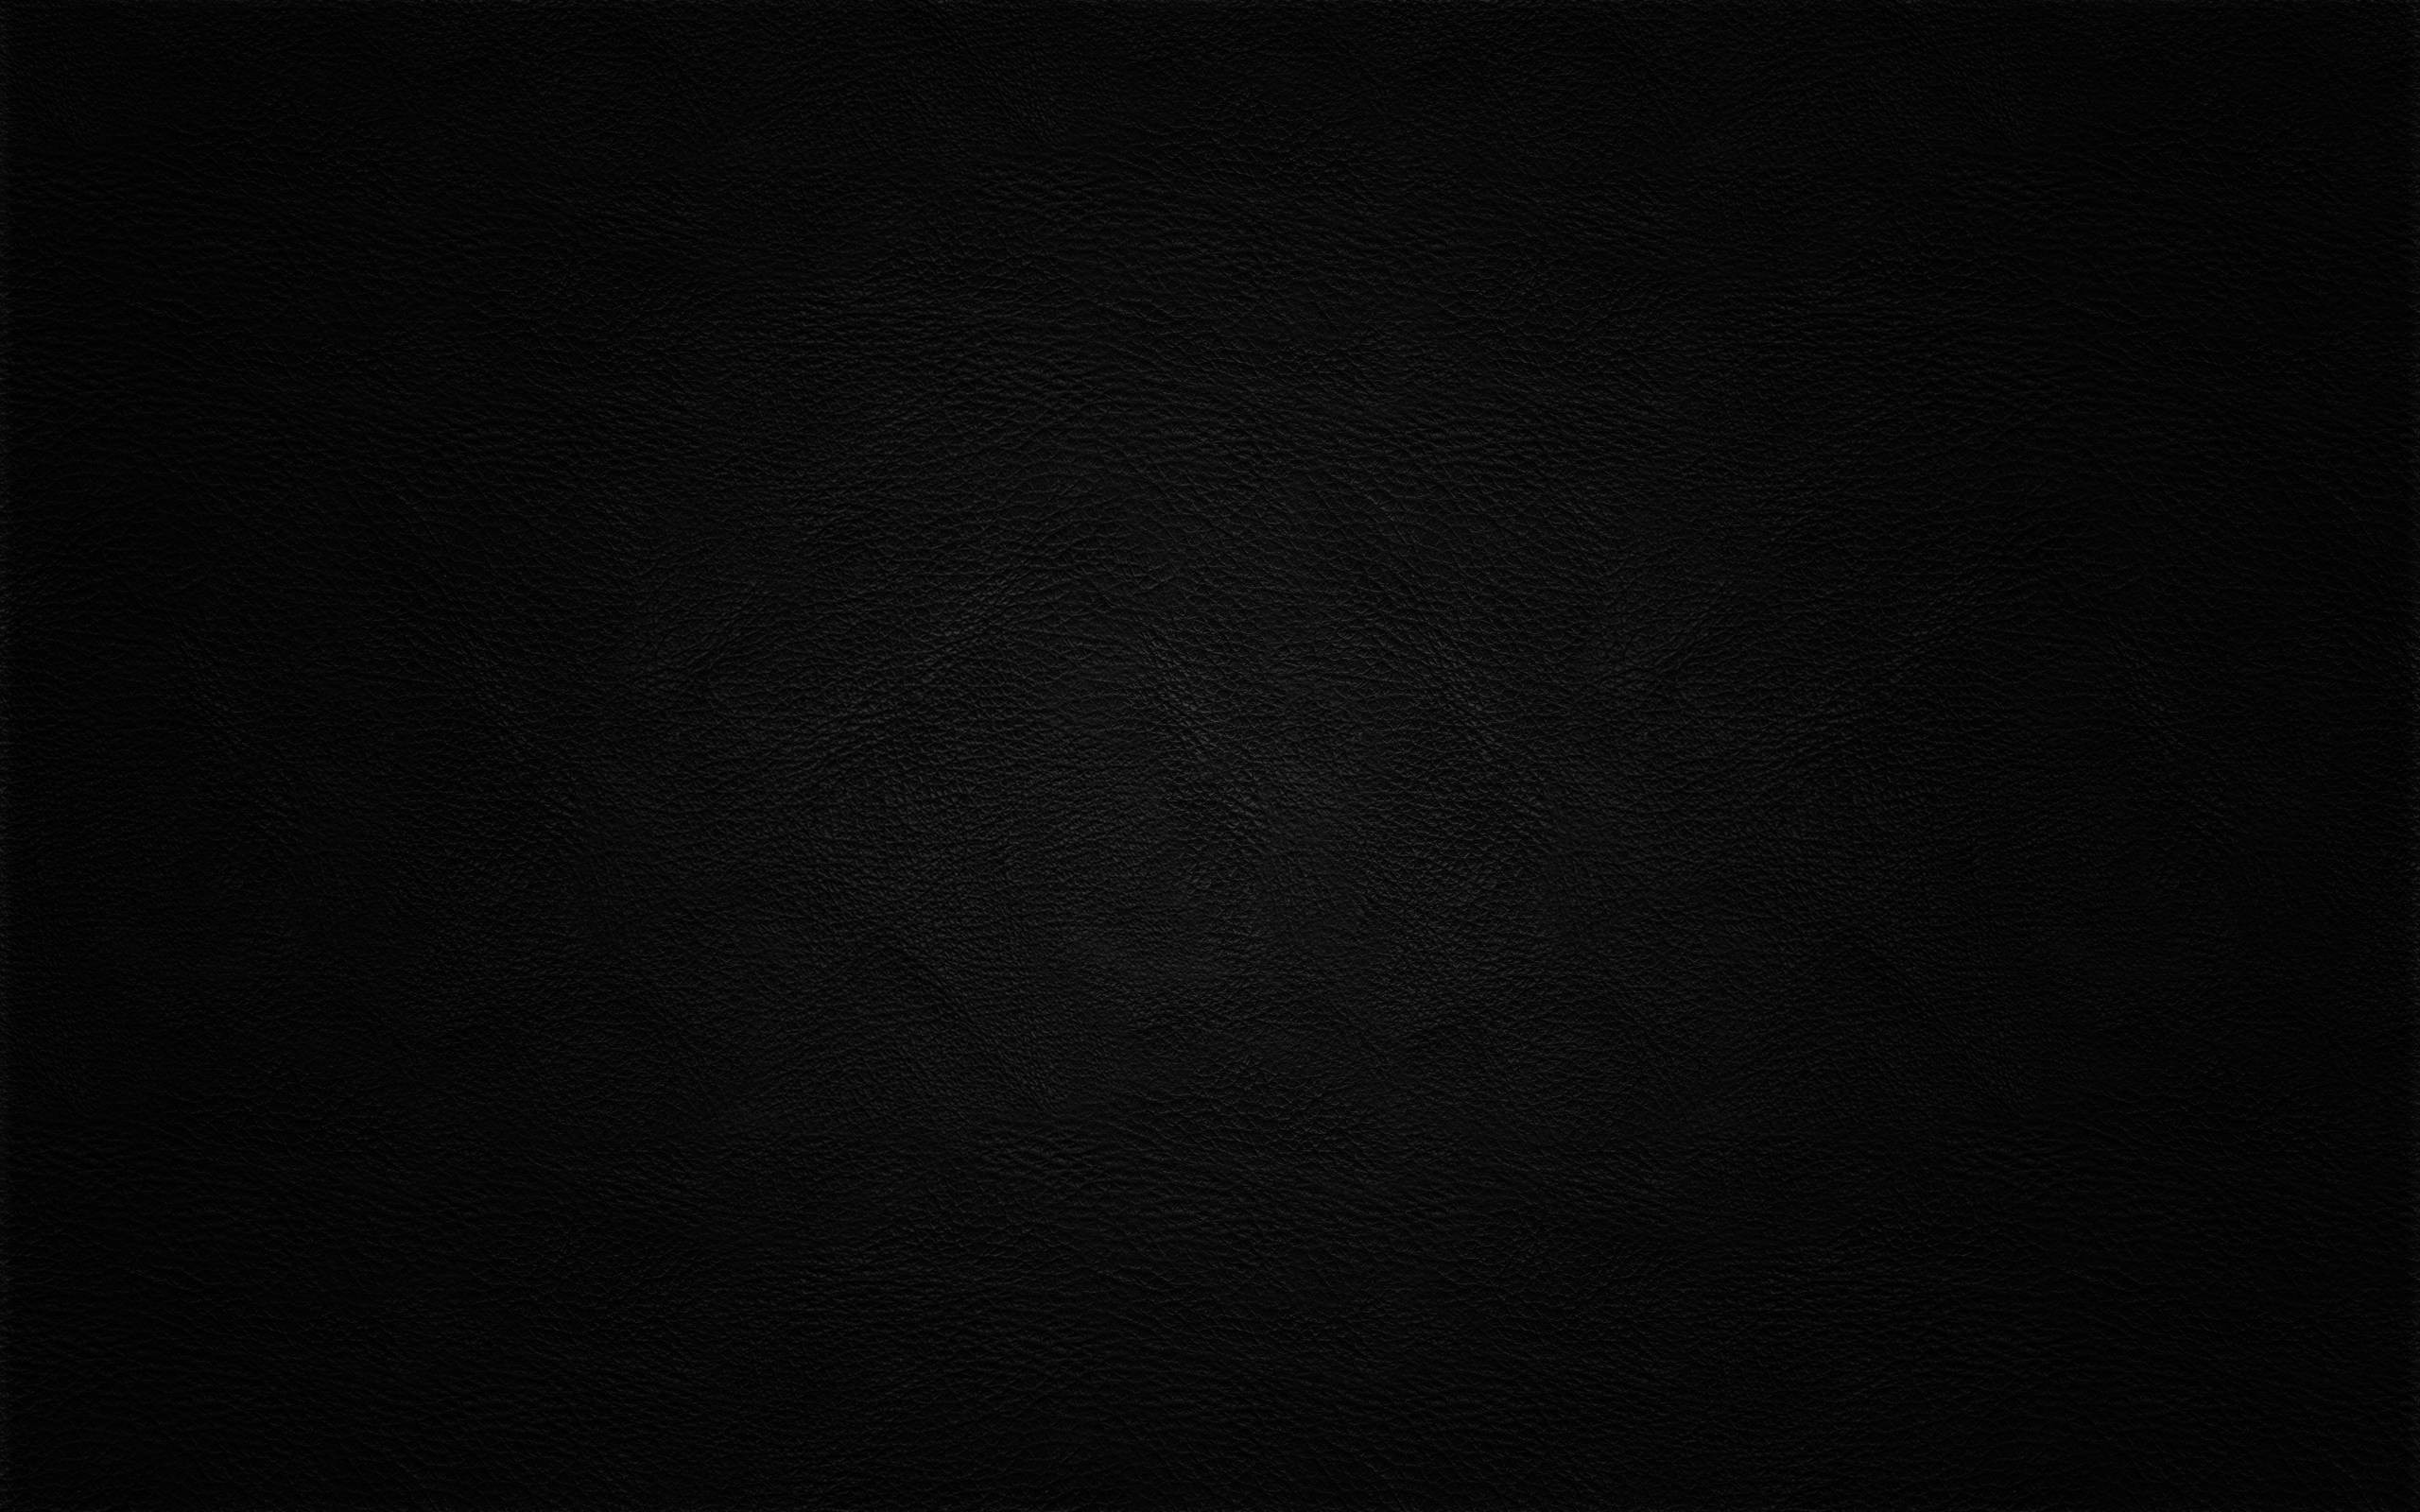 Glossy Black Wallpaper 72 images 2560x1600